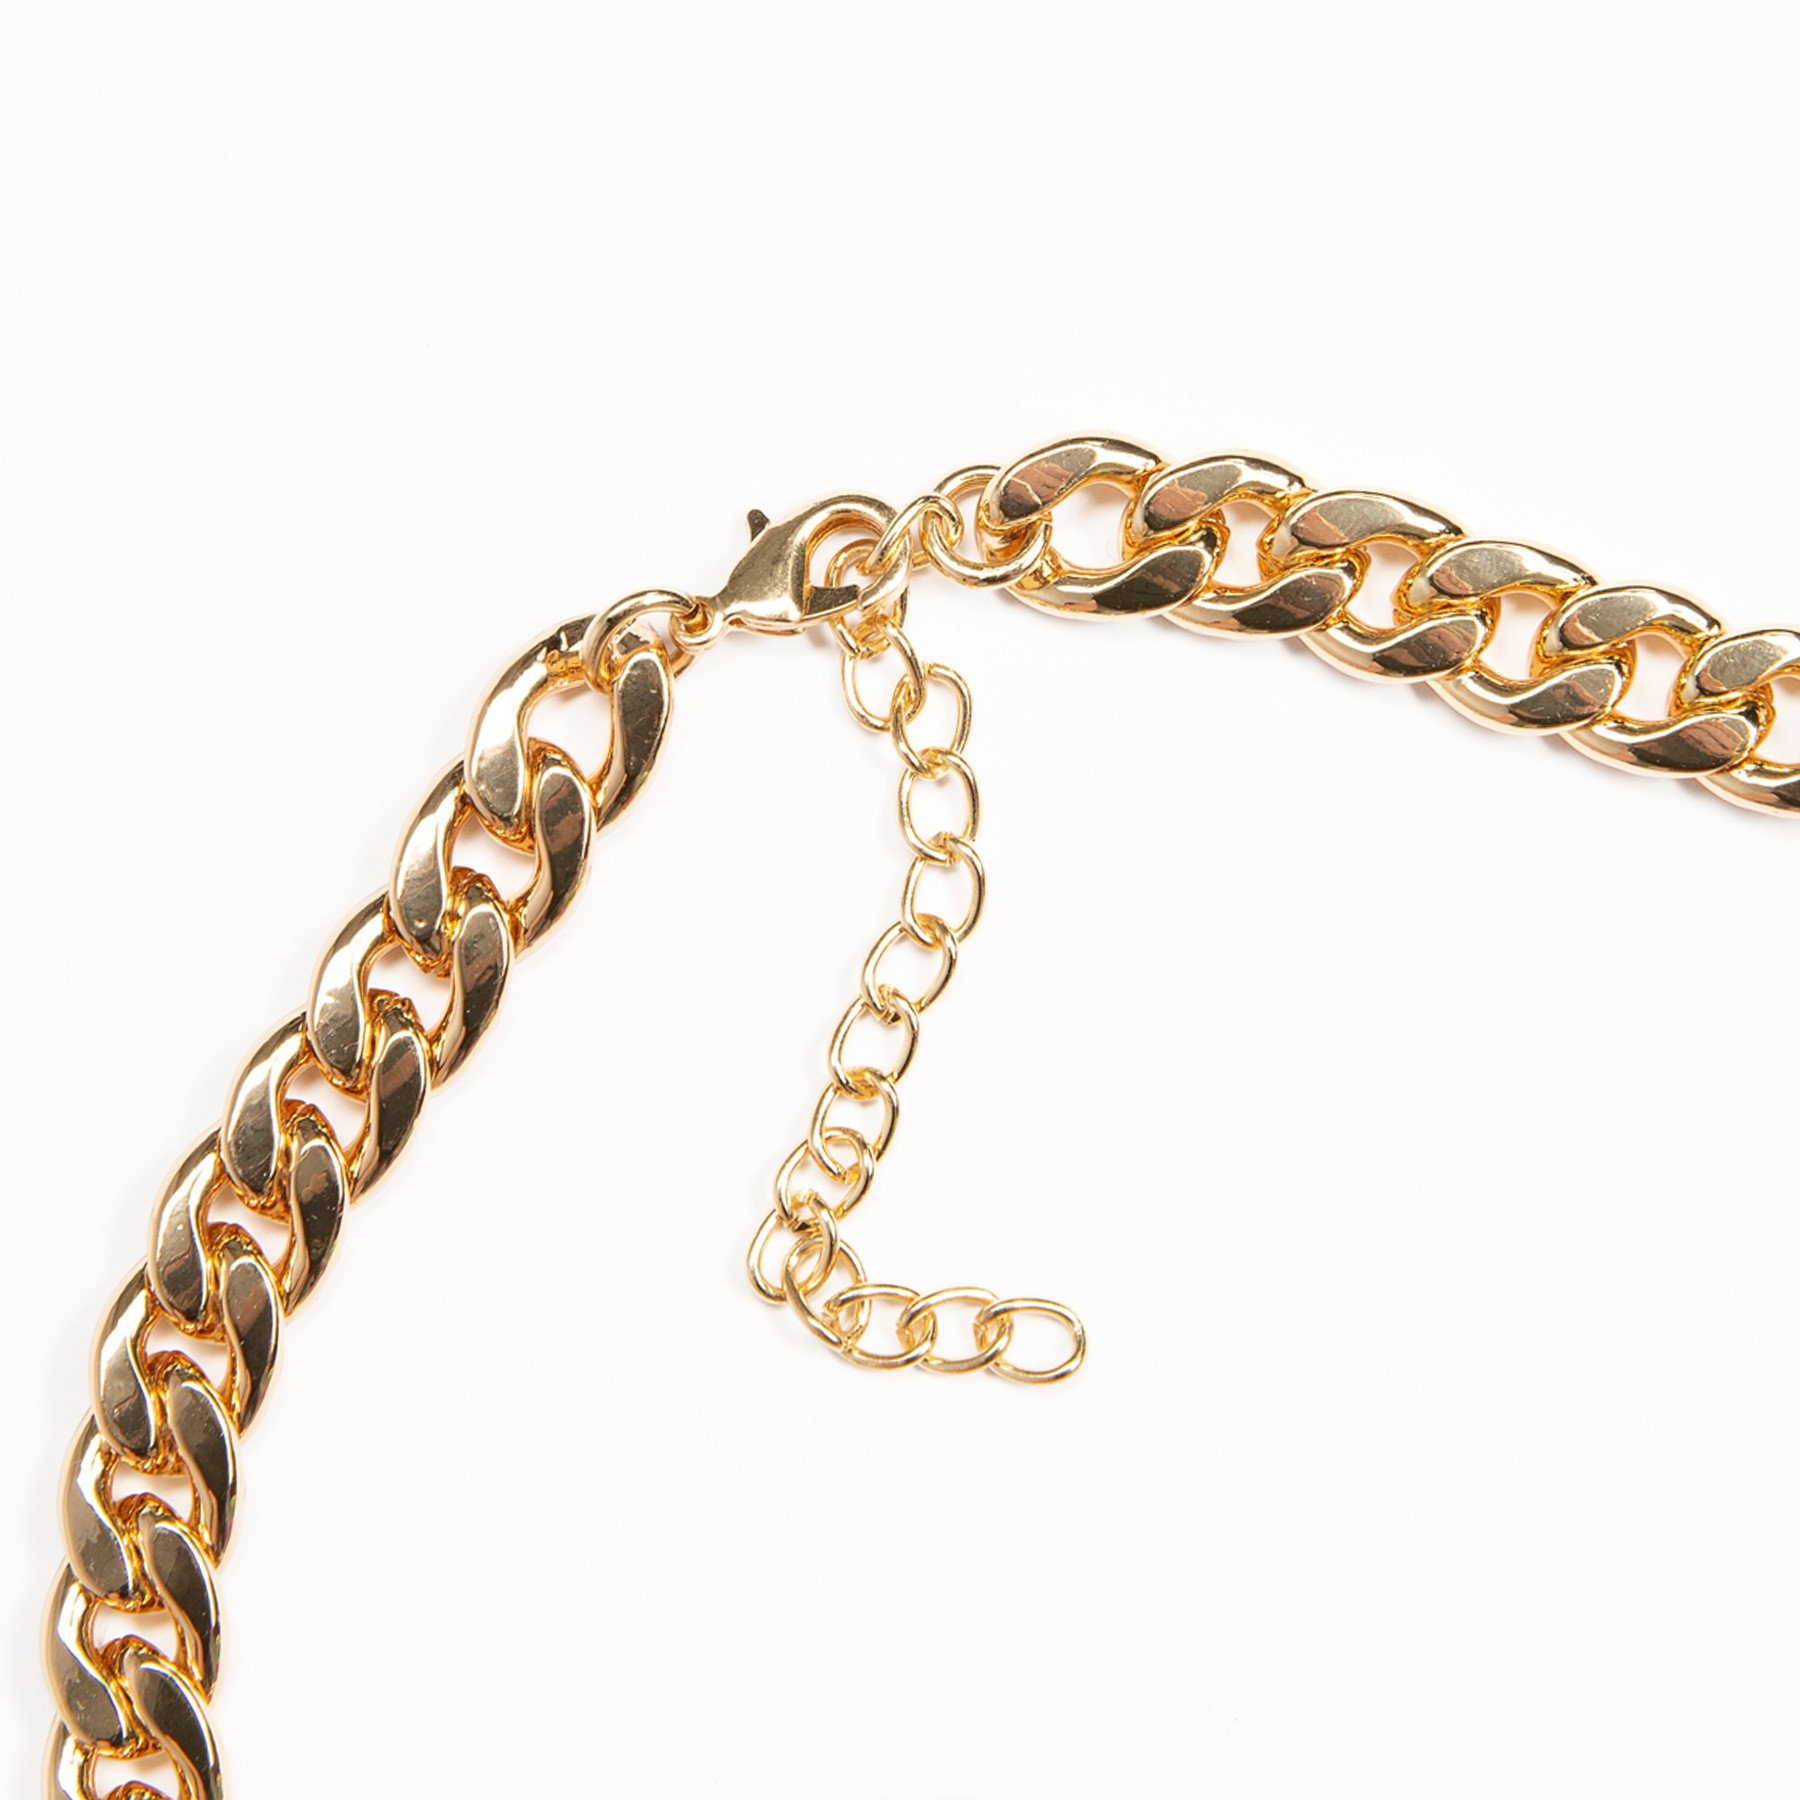 COMME DES GARCONS GIRL - COMME DES GARCONS GIRL LOVE ME DECORATIVE CHARM GOLD TONE CHAIN NECKLACE IN GOLD AND PINK